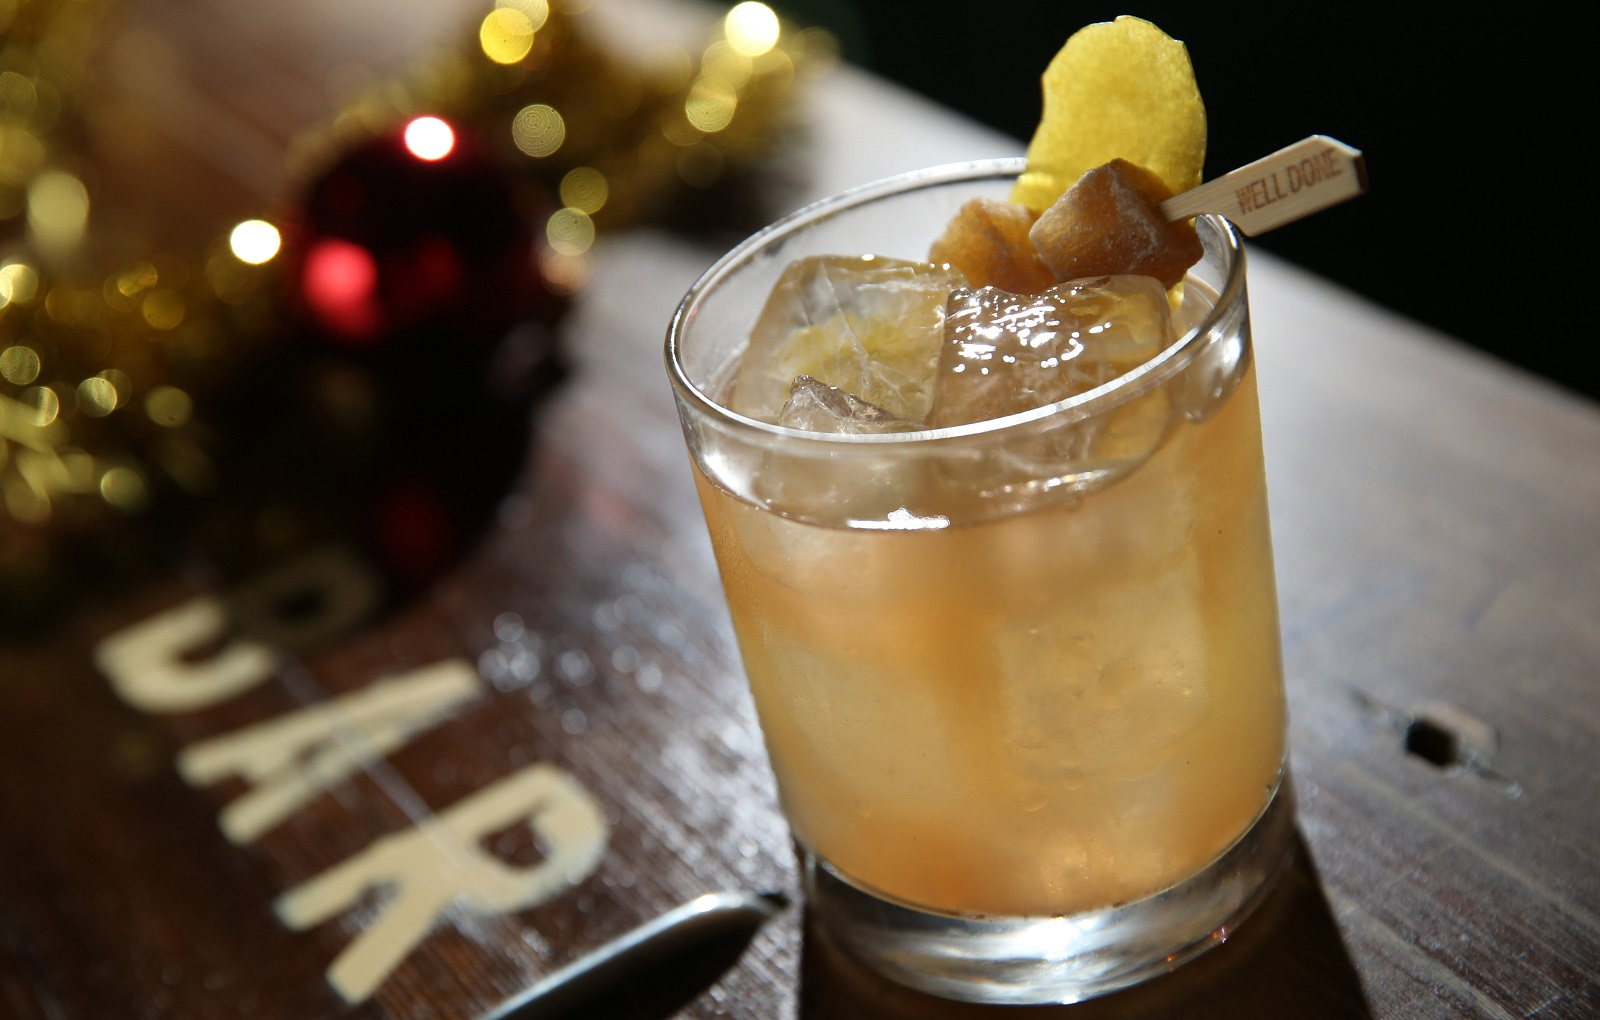 Penicillin, a Ballyhoo cocktail, is made with scotch, lemon, honey water, house-made ginger syrup and Islay scotch.  (Sharon Cantillon/Buffalo News)